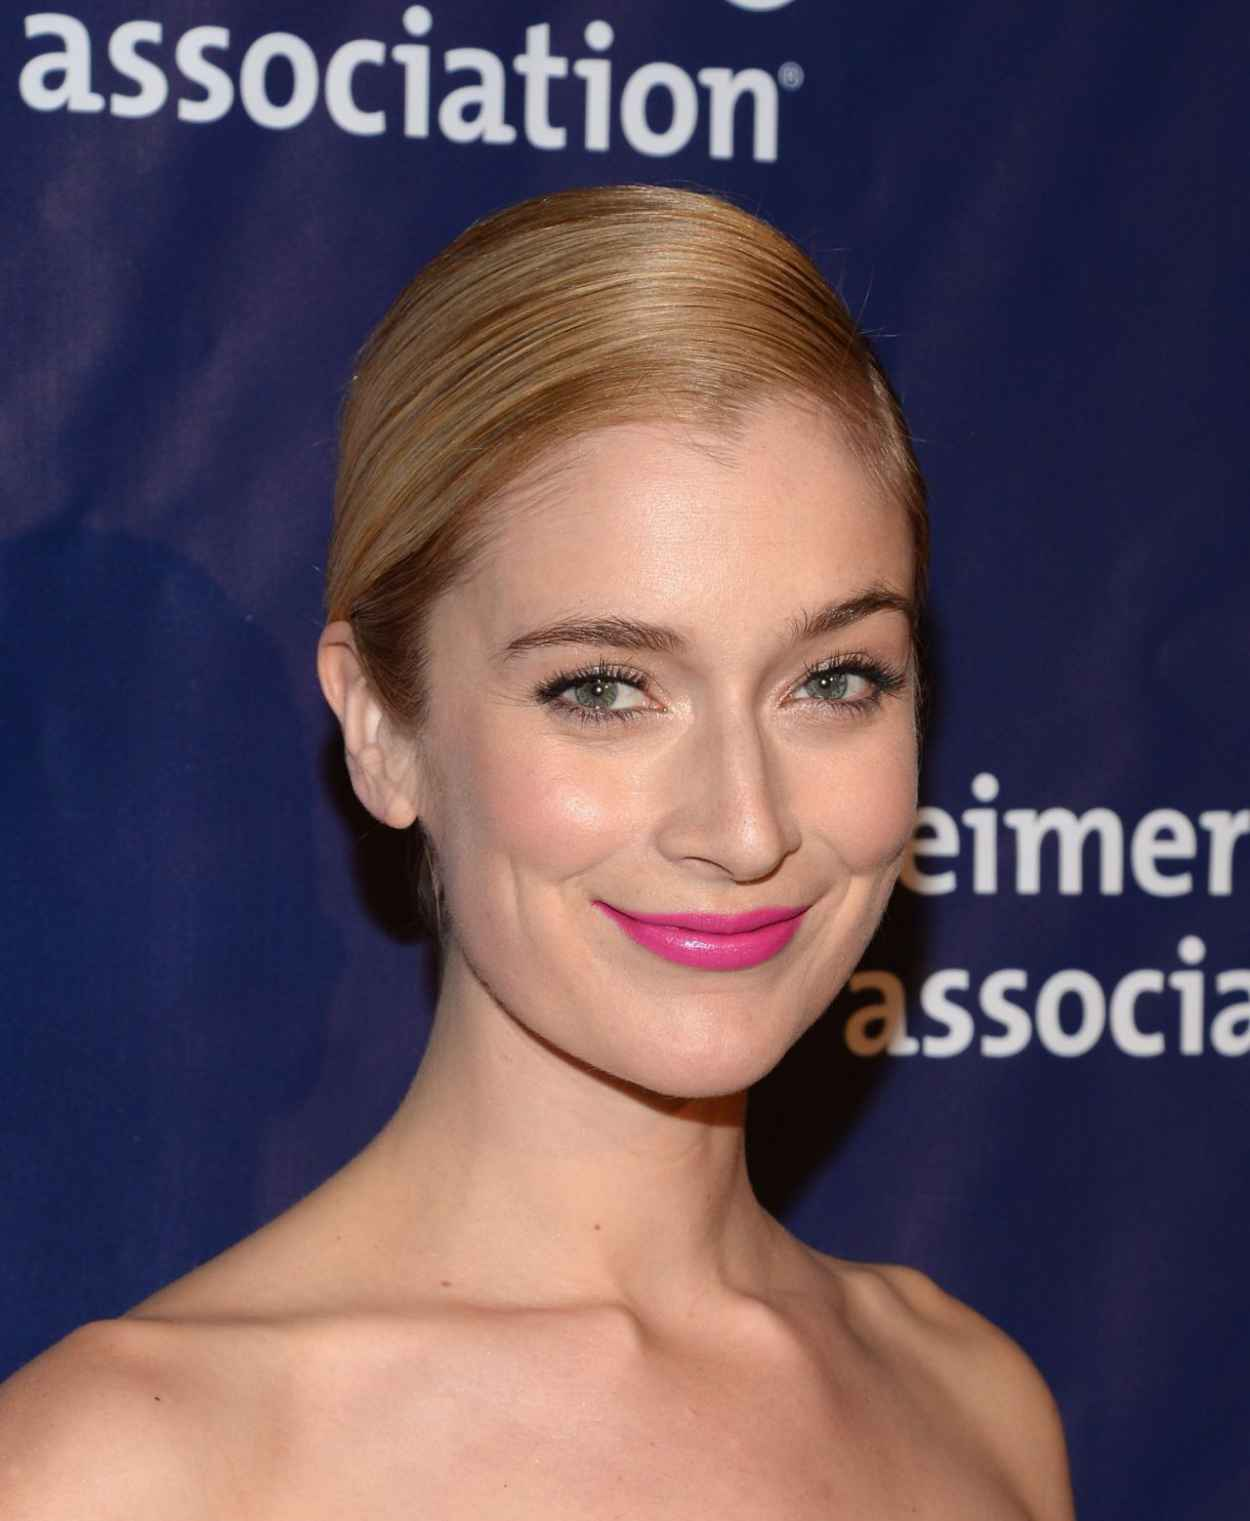 caitlin fitzgerald interviewcaitlin fitzgerald husband, caitlin fitzgerald listal, caitlin fitzgerald foto, caitlin fitzgerald height and weight, caitlin fitzgerald imdb, caitlin fitzgerald twitter, caitlin fitzgerald, caitlin fitzgerald instagram, caitlin fitzgerald birthday, caitlin fitzgerald interview, caitlin fitzgerald boyfriend, caitlin fitzgerald bio, caitlin fitzgerald dating, caitlin fitzgerald nudography, caitlin fitzgerald pictures